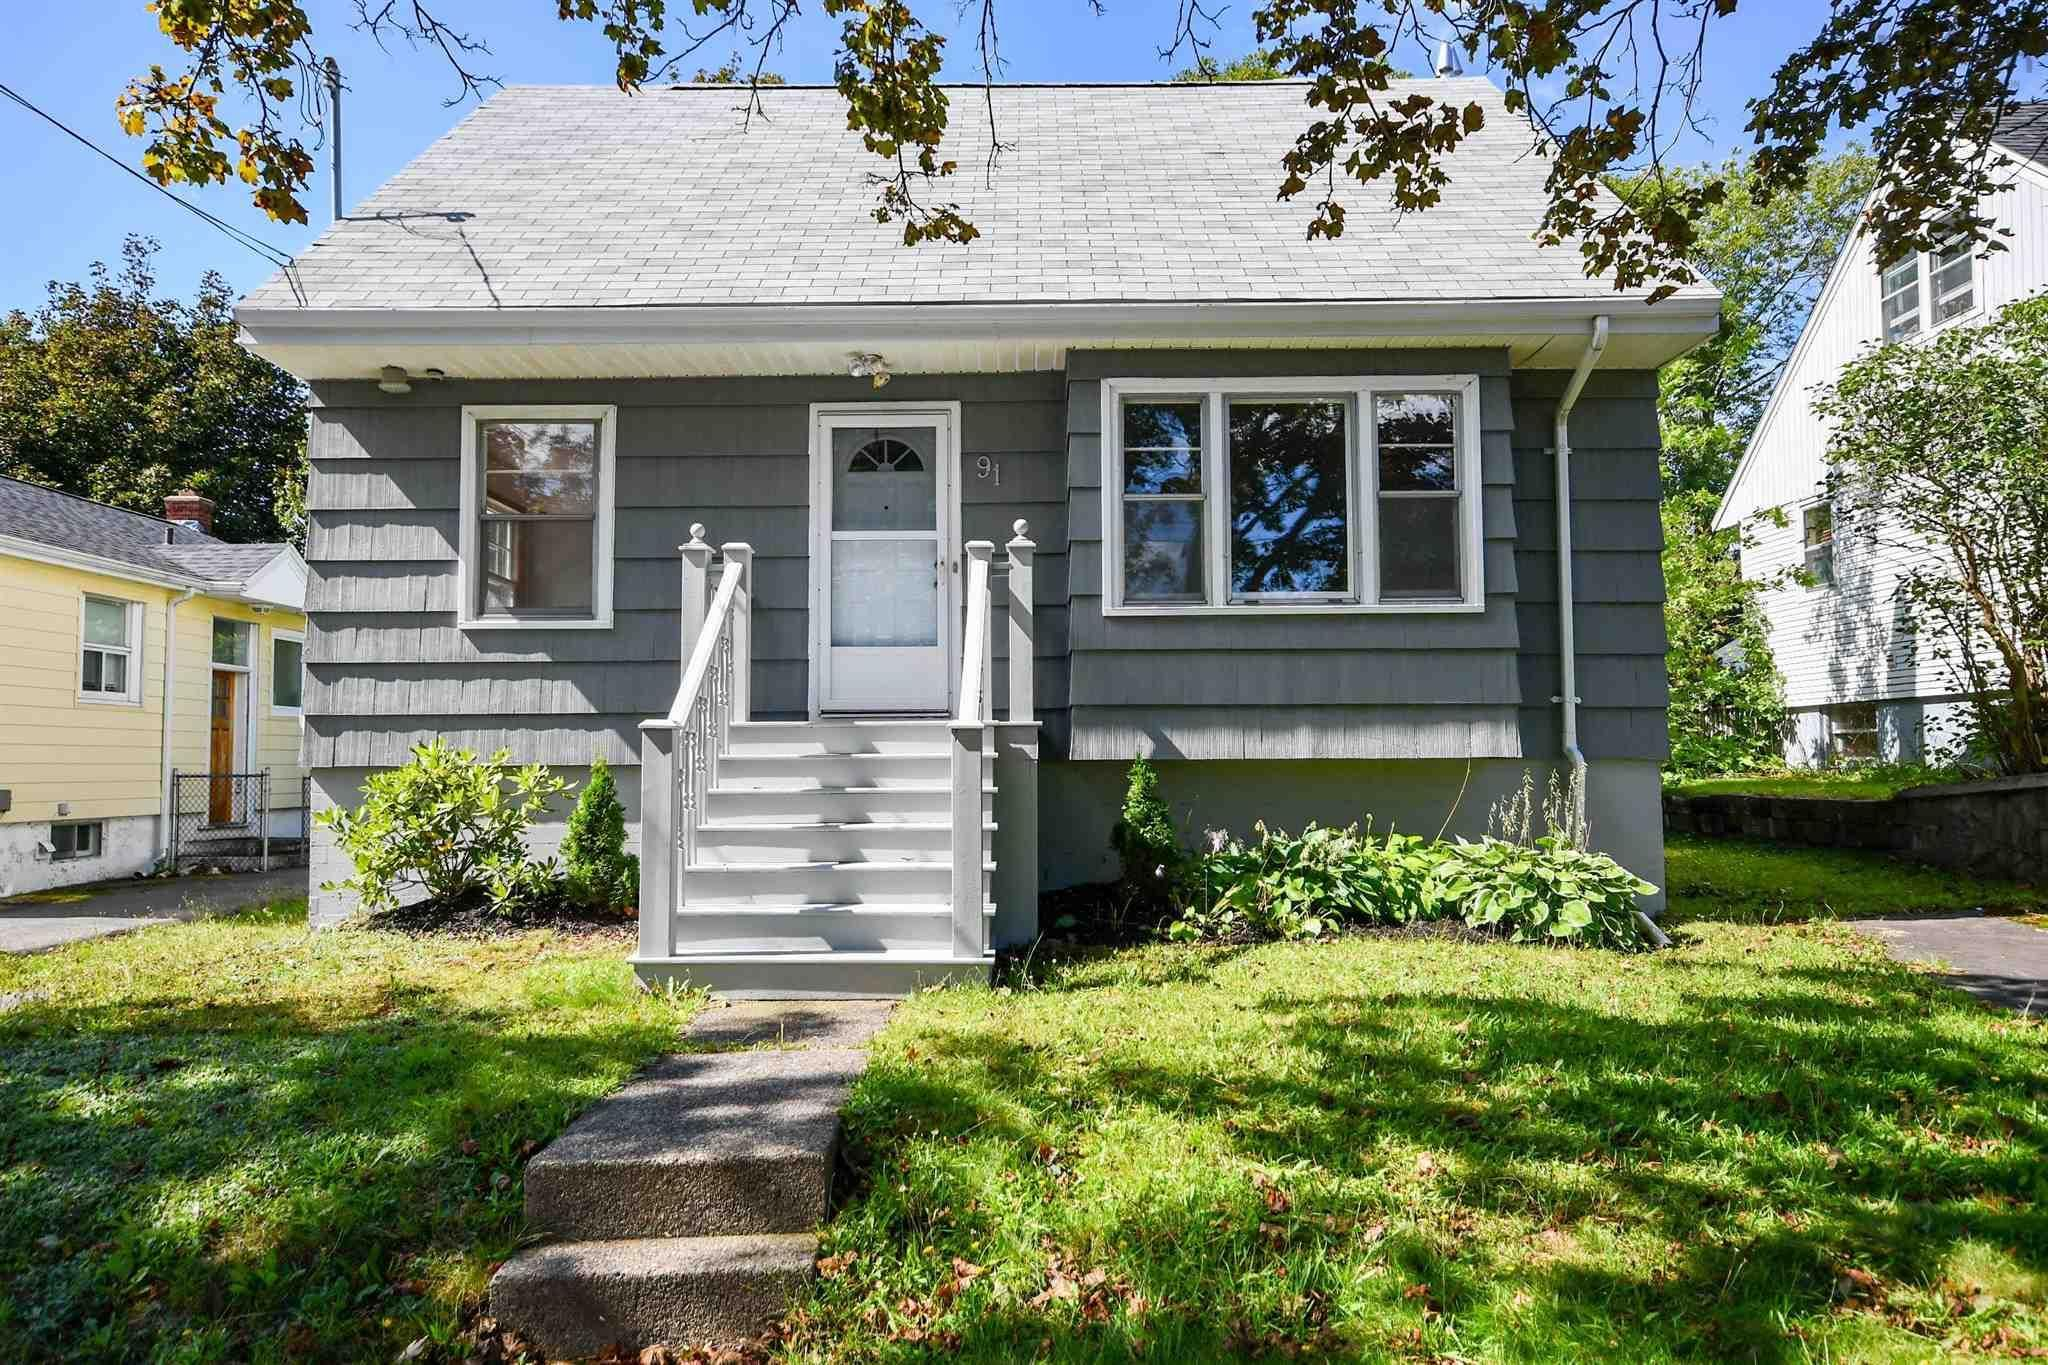 Main Photo: 91 Russell Street in Dartmouth: 13-Crichton Park, Albro Lake Residential for sale (Halifax-Dartmouth)  : MLS®# 202123301